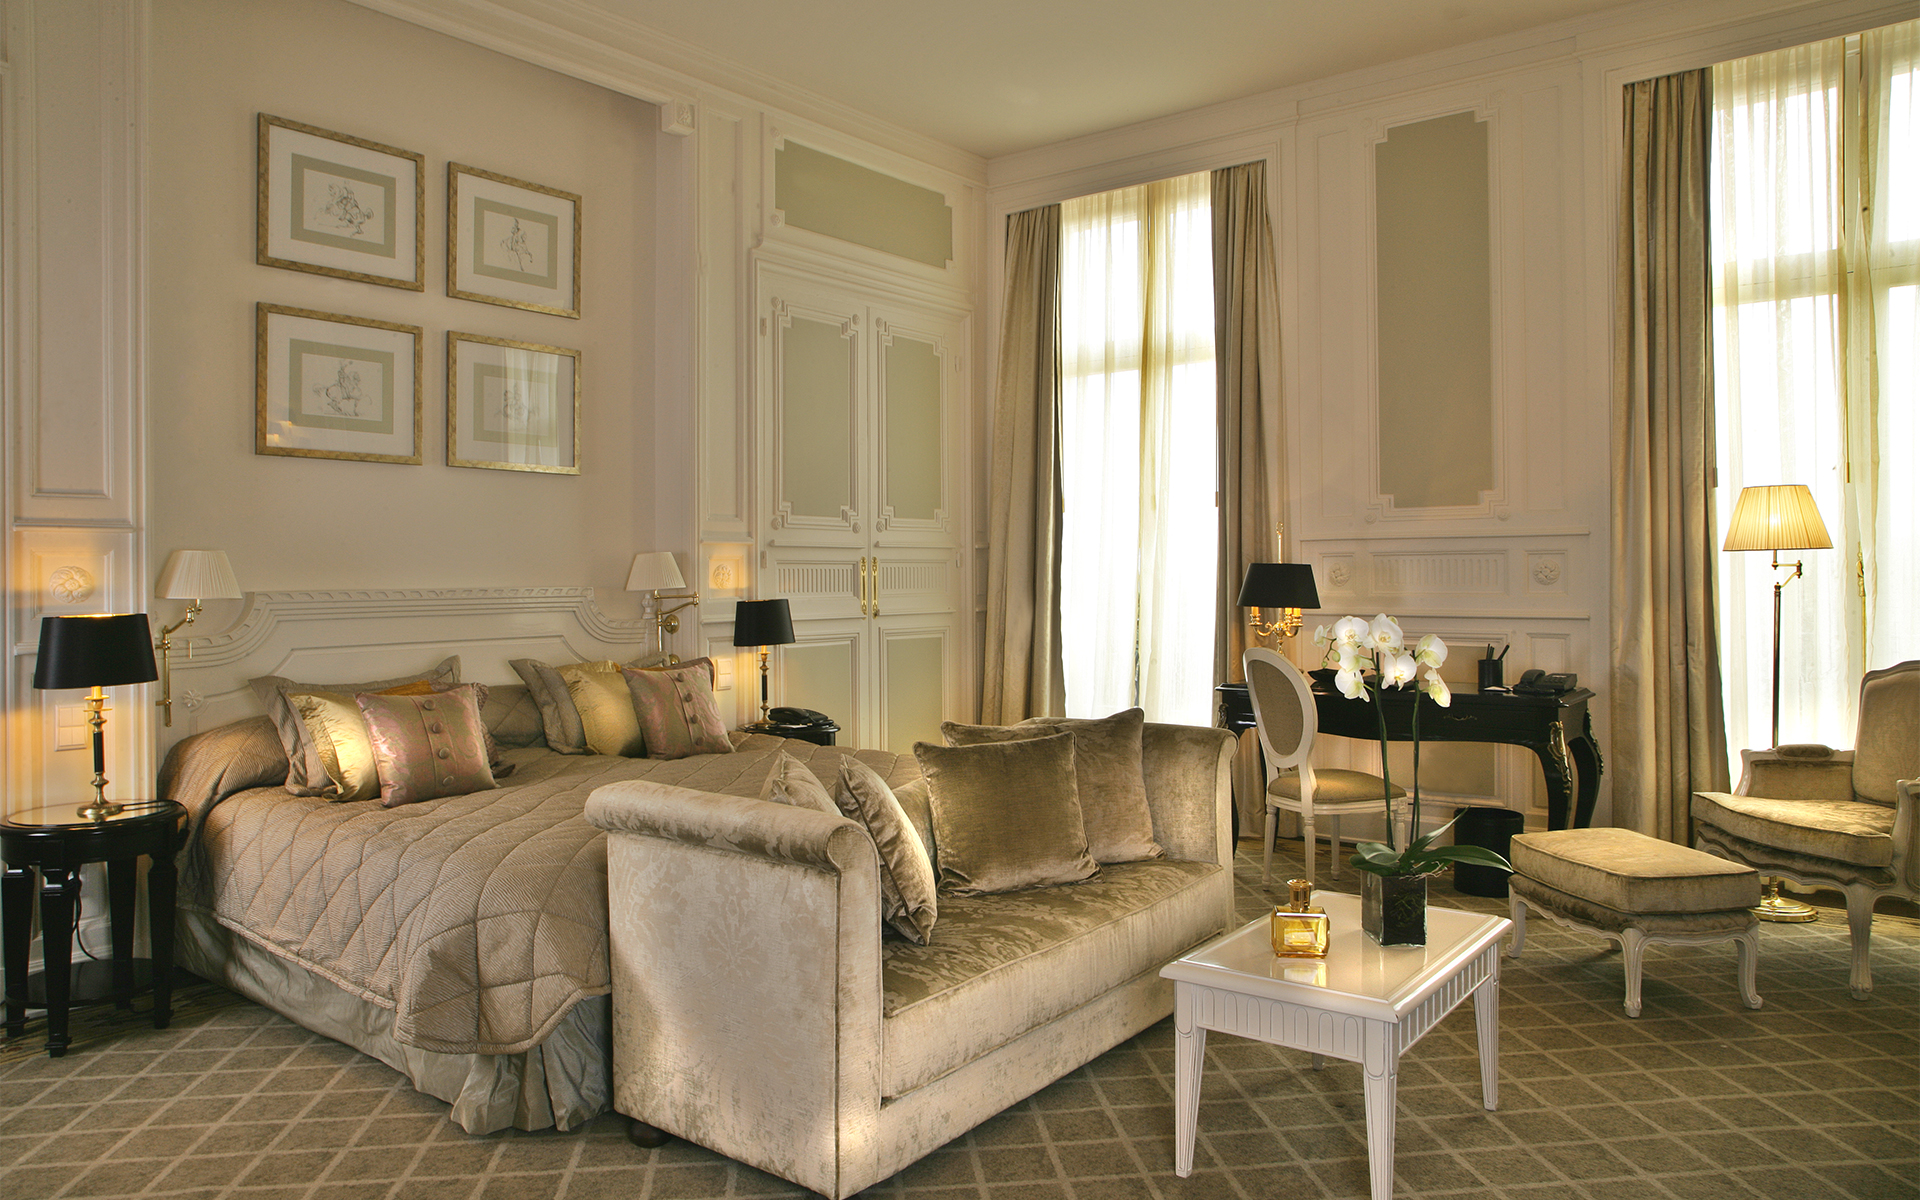 467/import-from-v1/images/Chambres/Chambre Royale/Chambre-Royale-2.jpg